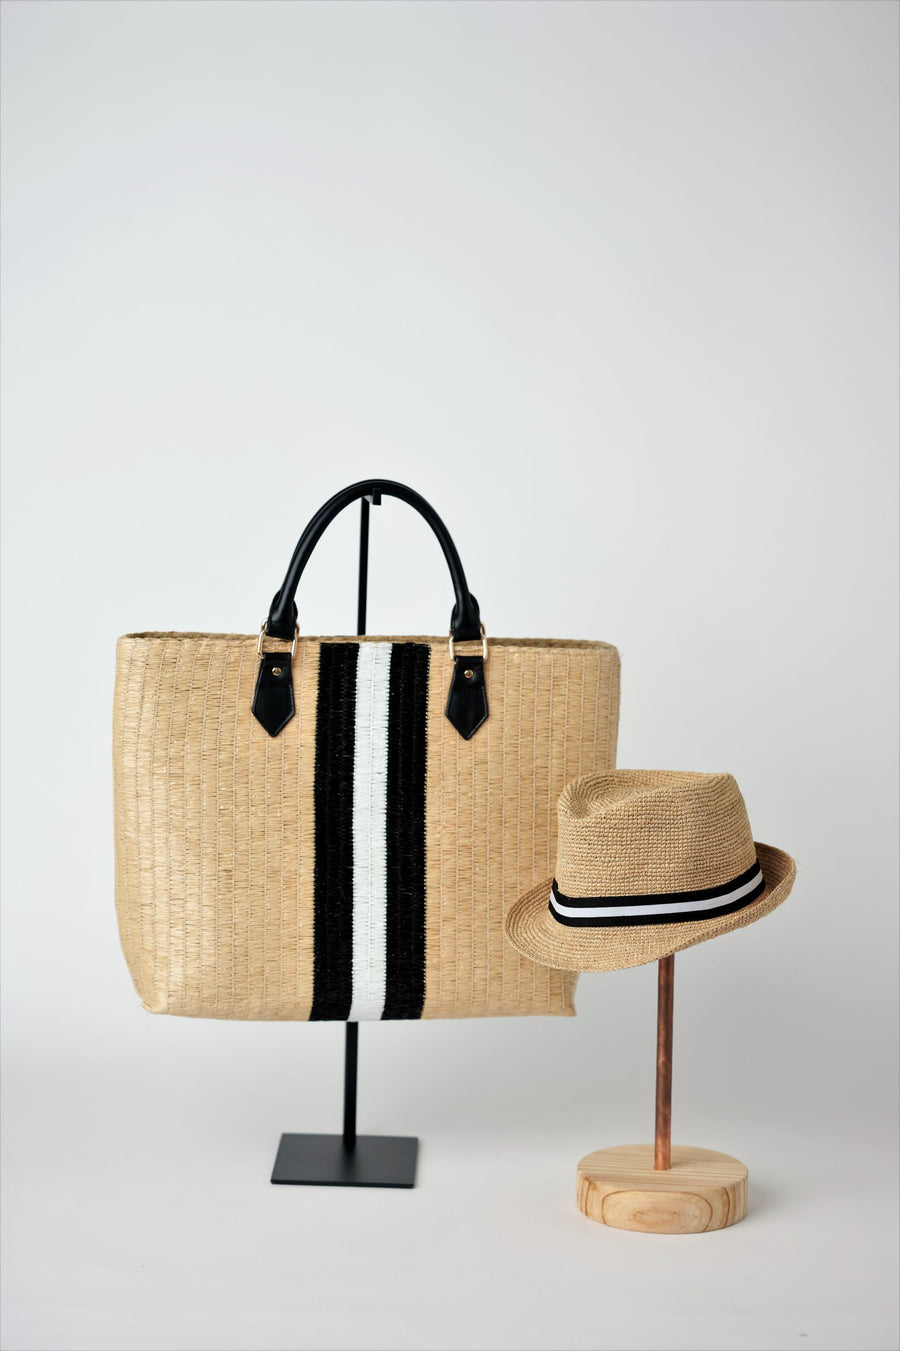 Collection of Anya & Niki Benicia straw tote bag with black leather handles and black & white center stripe, along with the Essential crochet straw hat with black and white band.